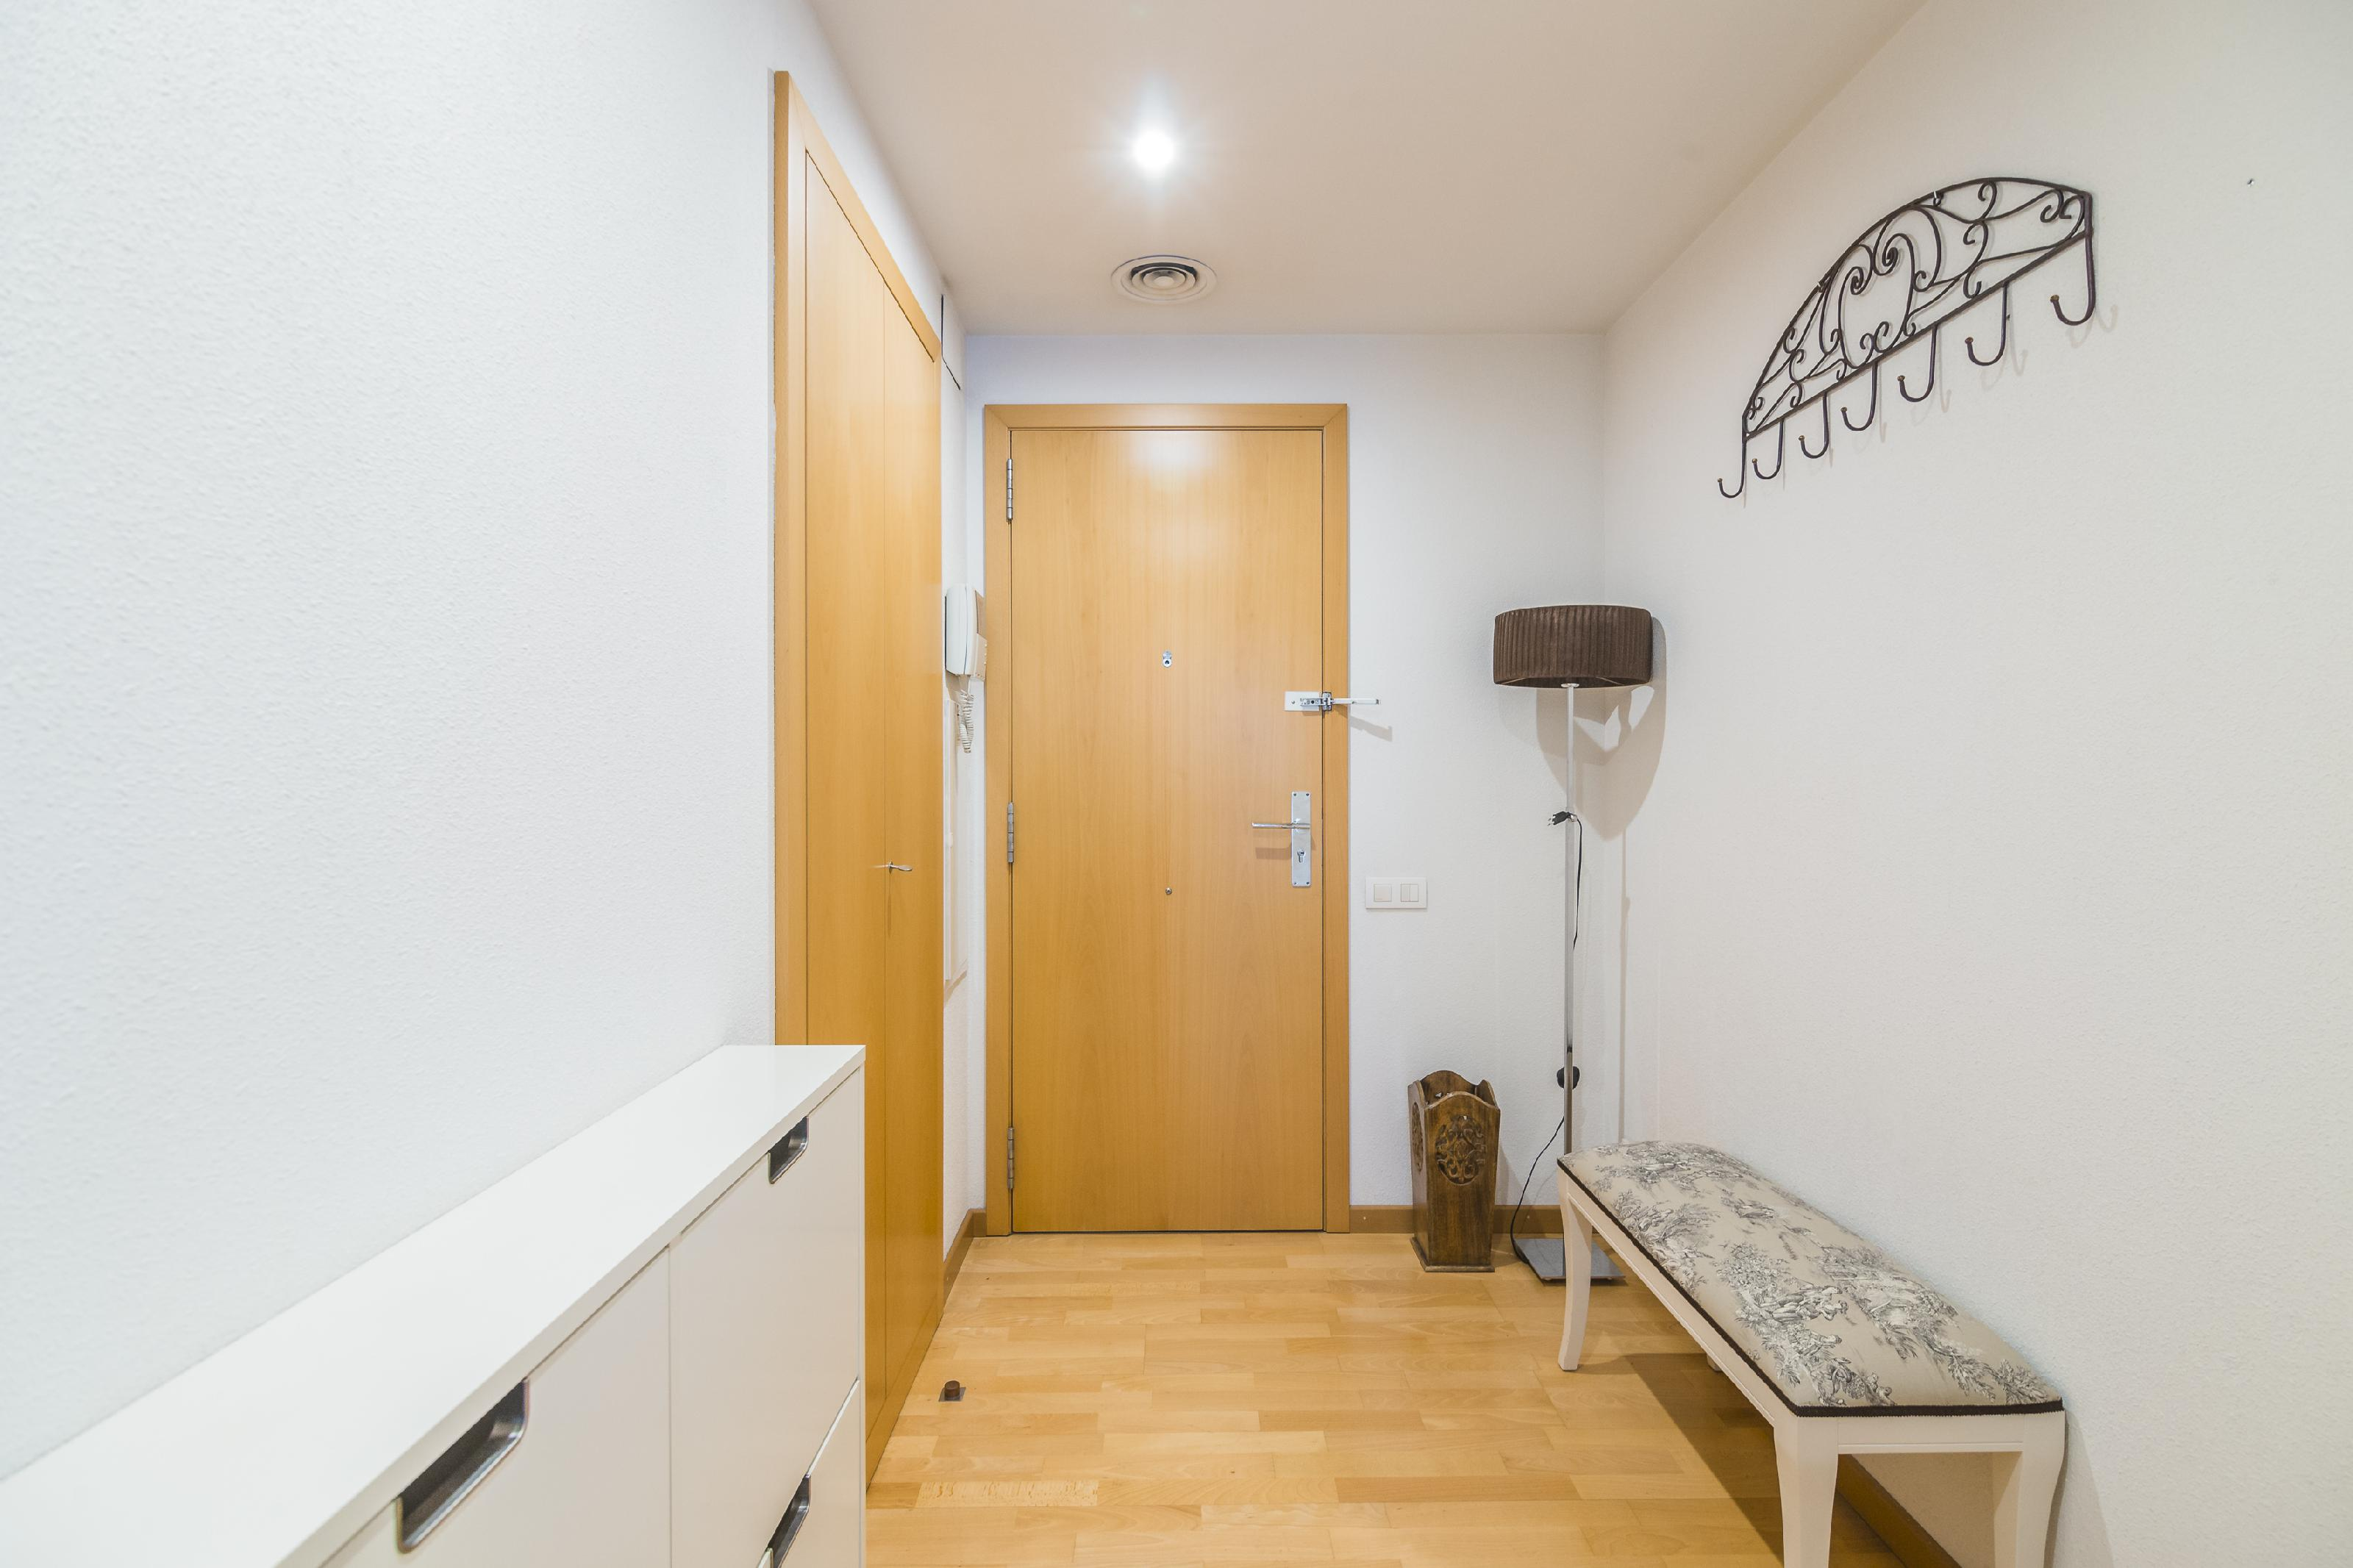 230834 Penthouse for sale in Horta-Guinardó, El Guinardó 6